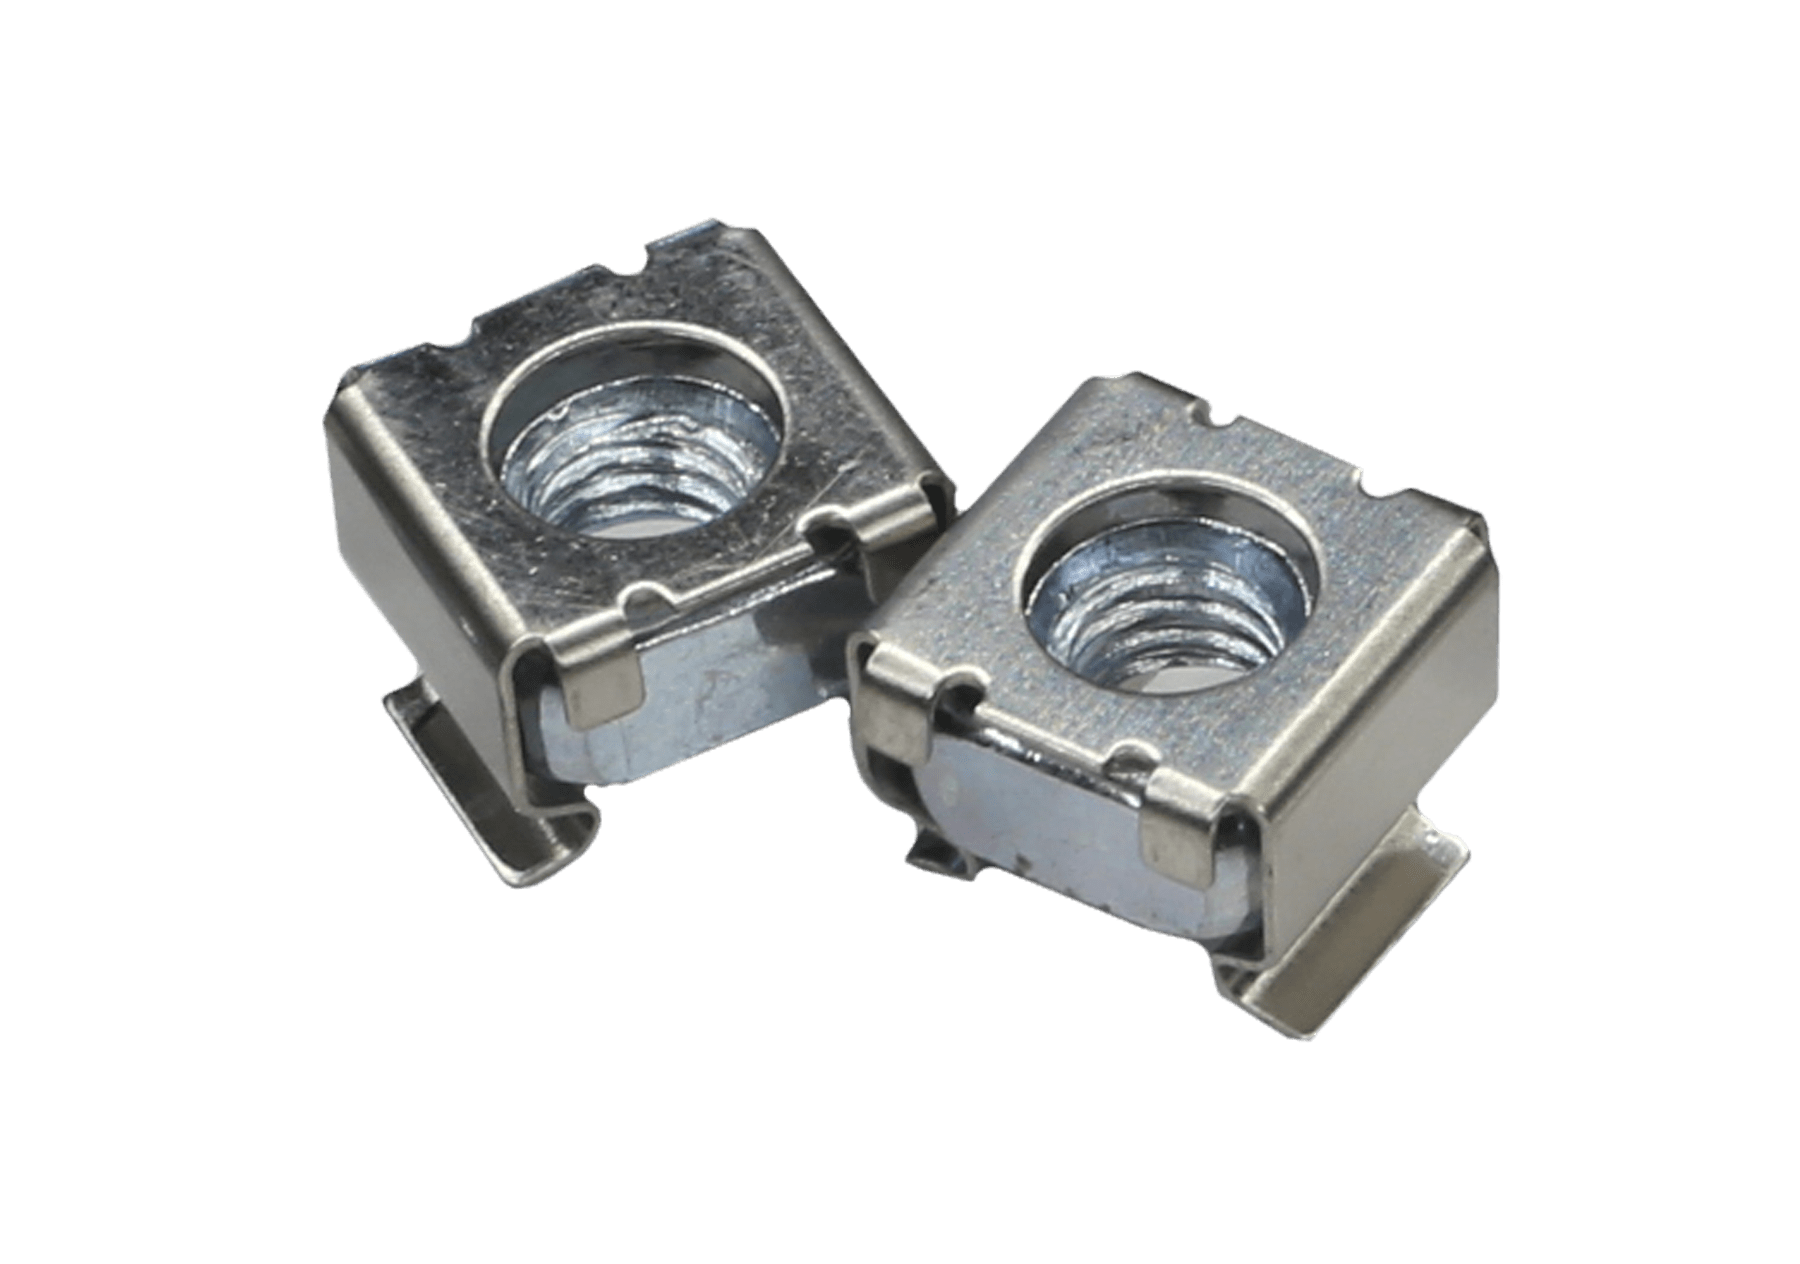 KM600A - M6 cage nut for 1.6 - 3.5 mm plate thickness